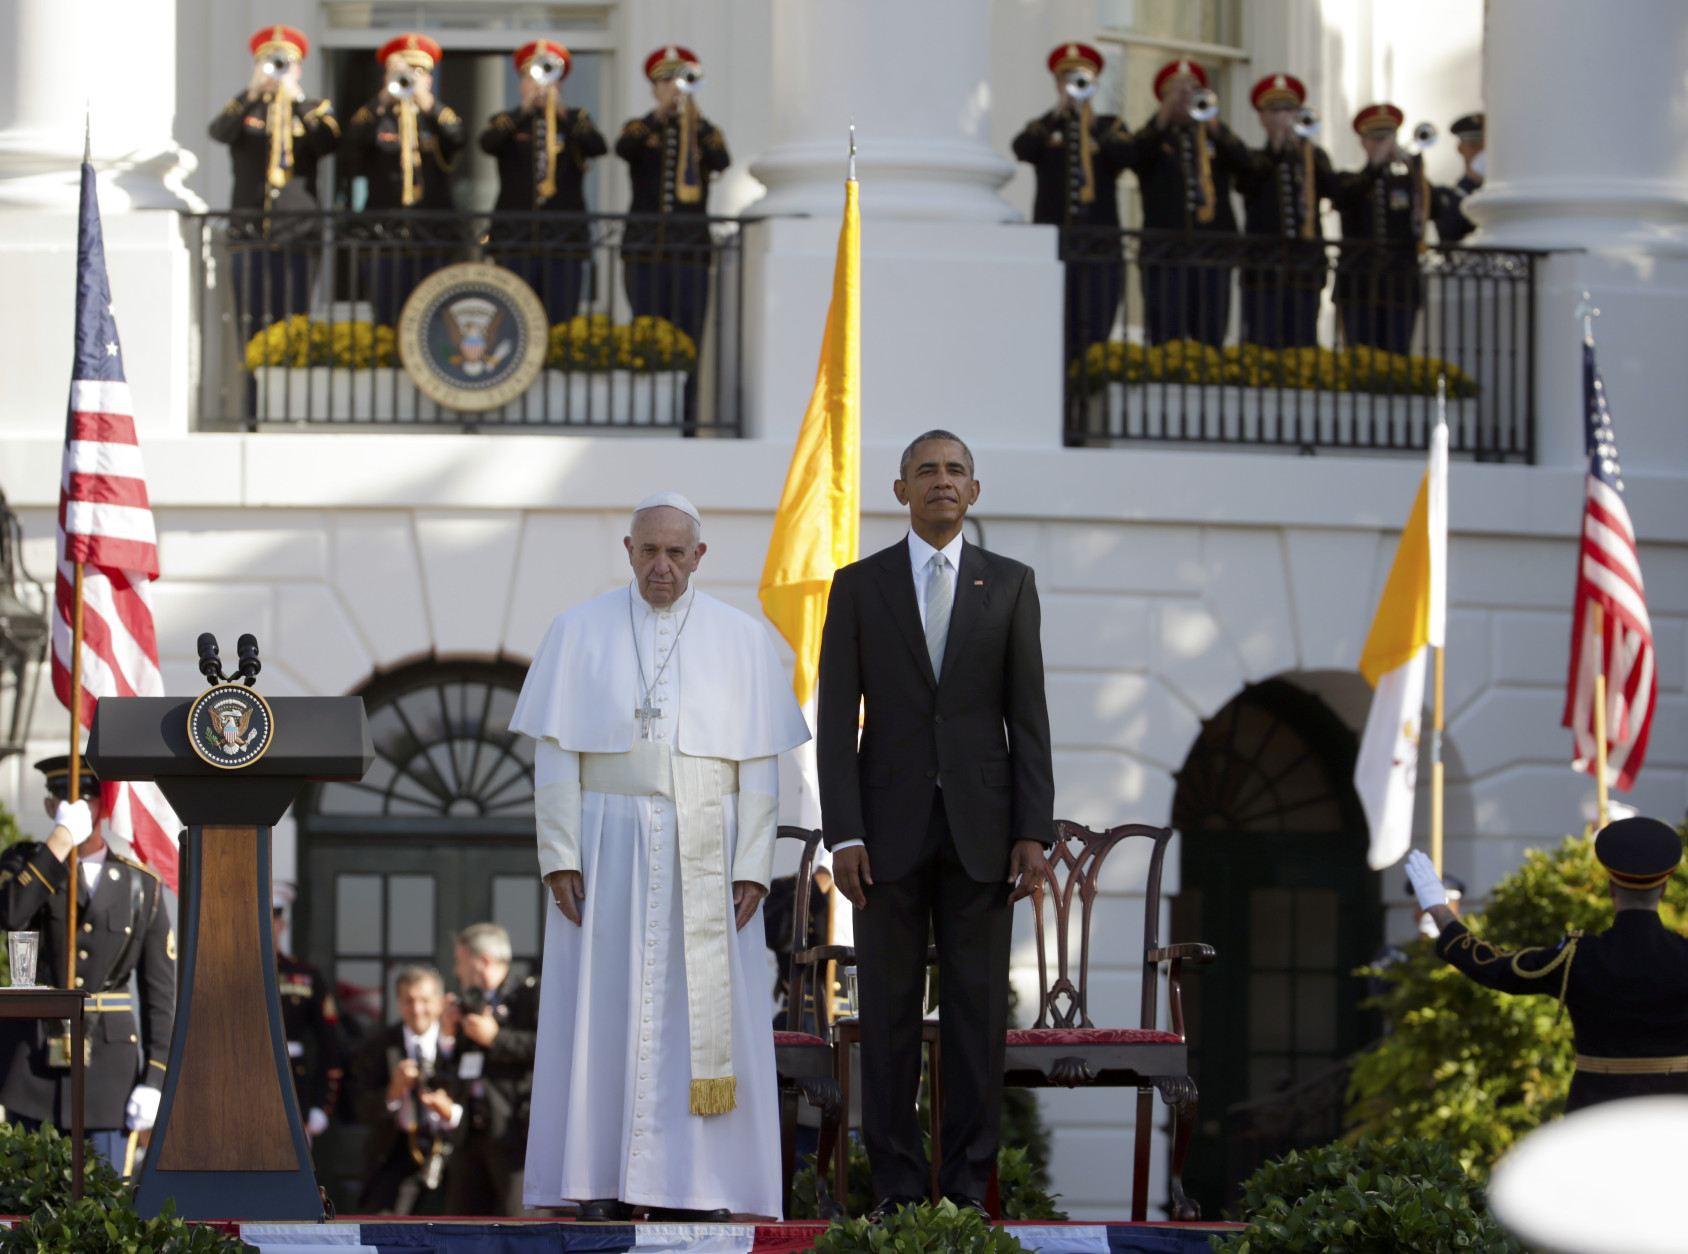 President Barack Obama and Pope Francis stand at attention during the playing of the national anthems during a state arrival ceremony for the pope, Wednesday, Sept. 23, 2015, on the South Lawn of the White House in Washington. (AP Photo/Pablo Martinez Monsivais)